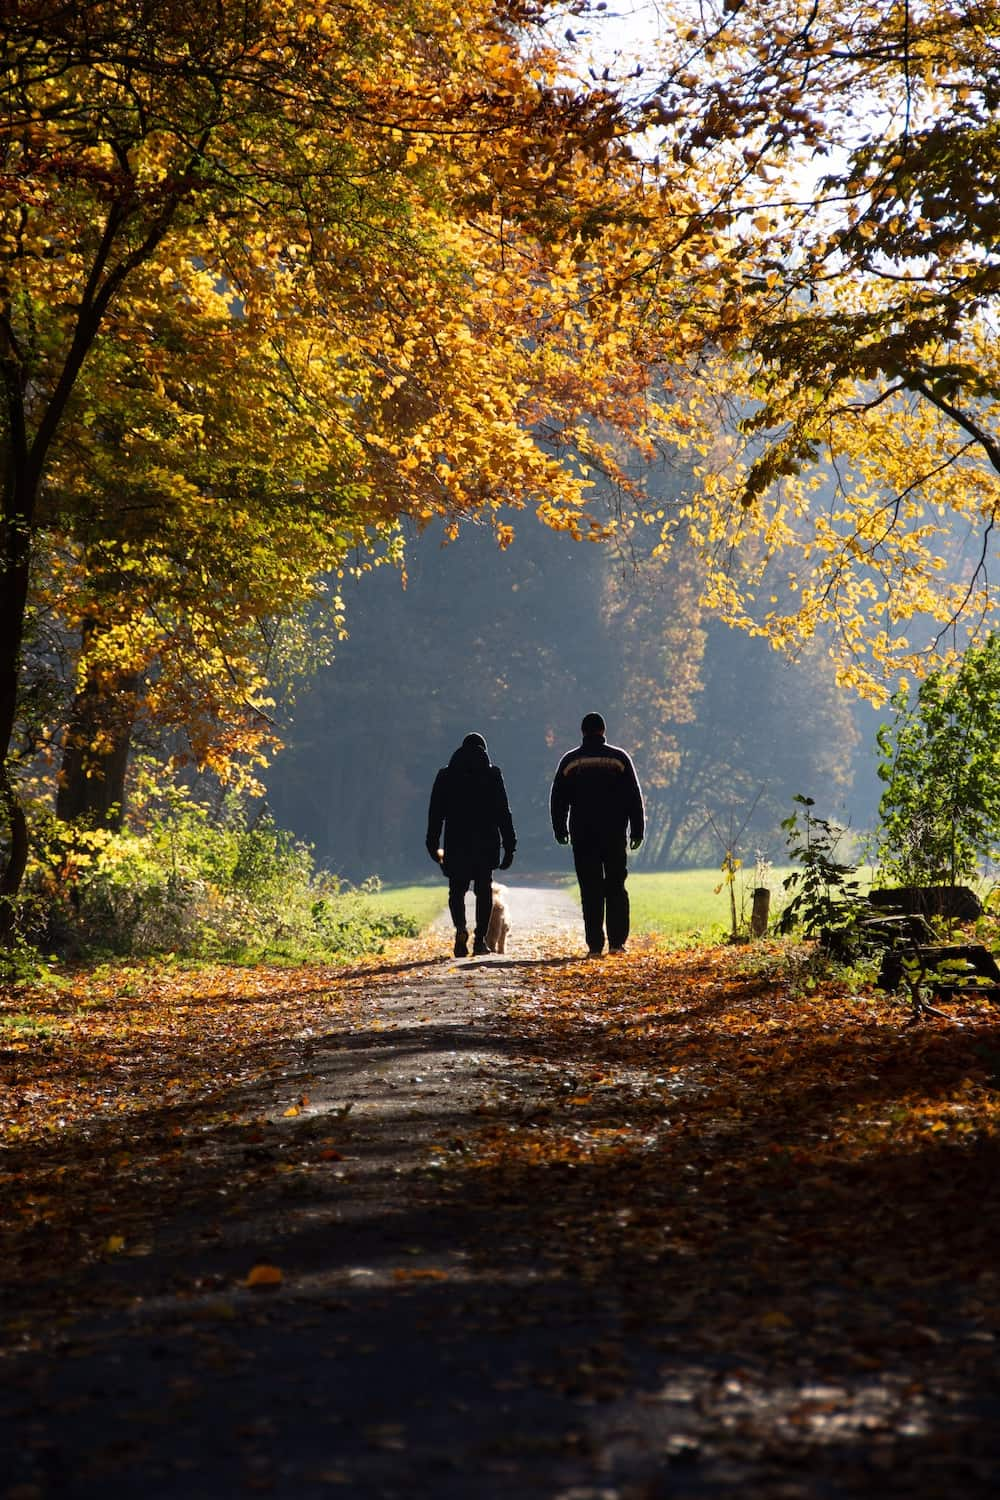 Two people walking dog along path